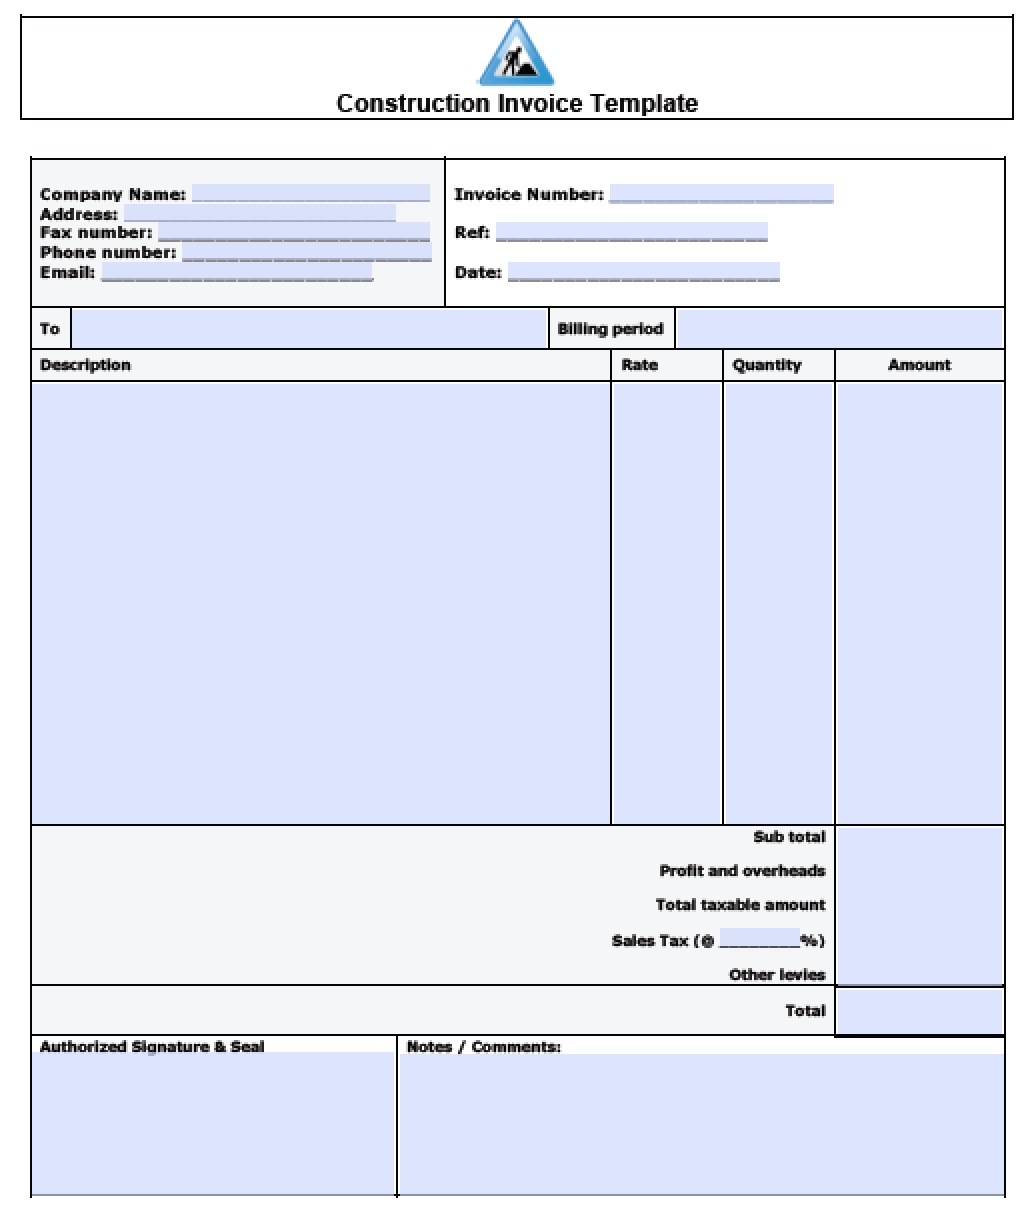 company invoice template word  Free Construction Invoice Template | Excel | PDF | Word (.doc)